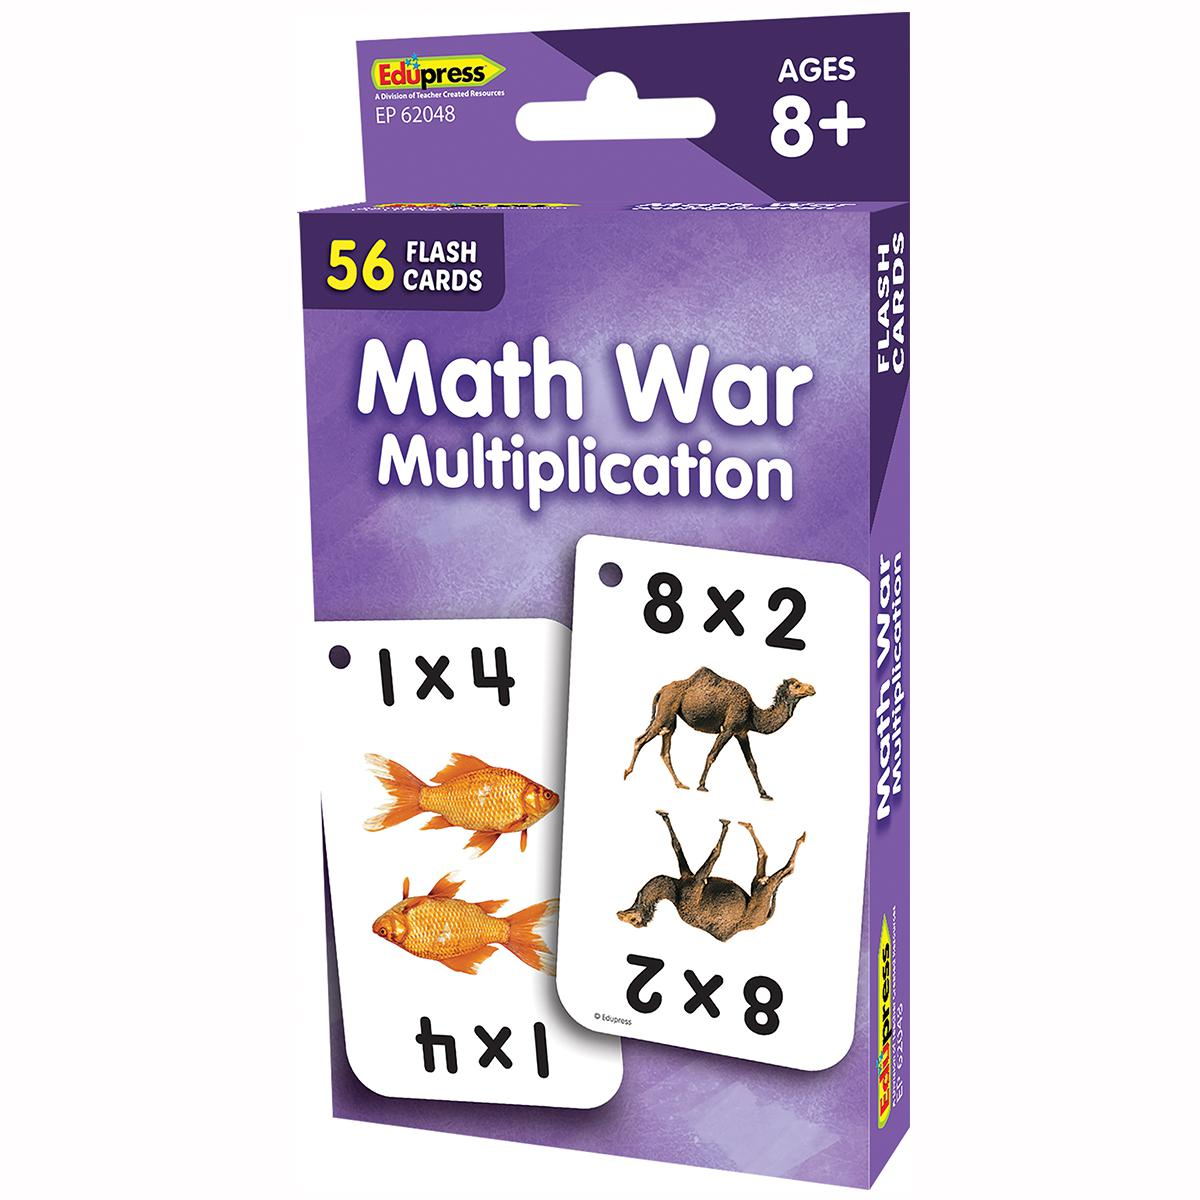 Math War Multiplication Flashcards